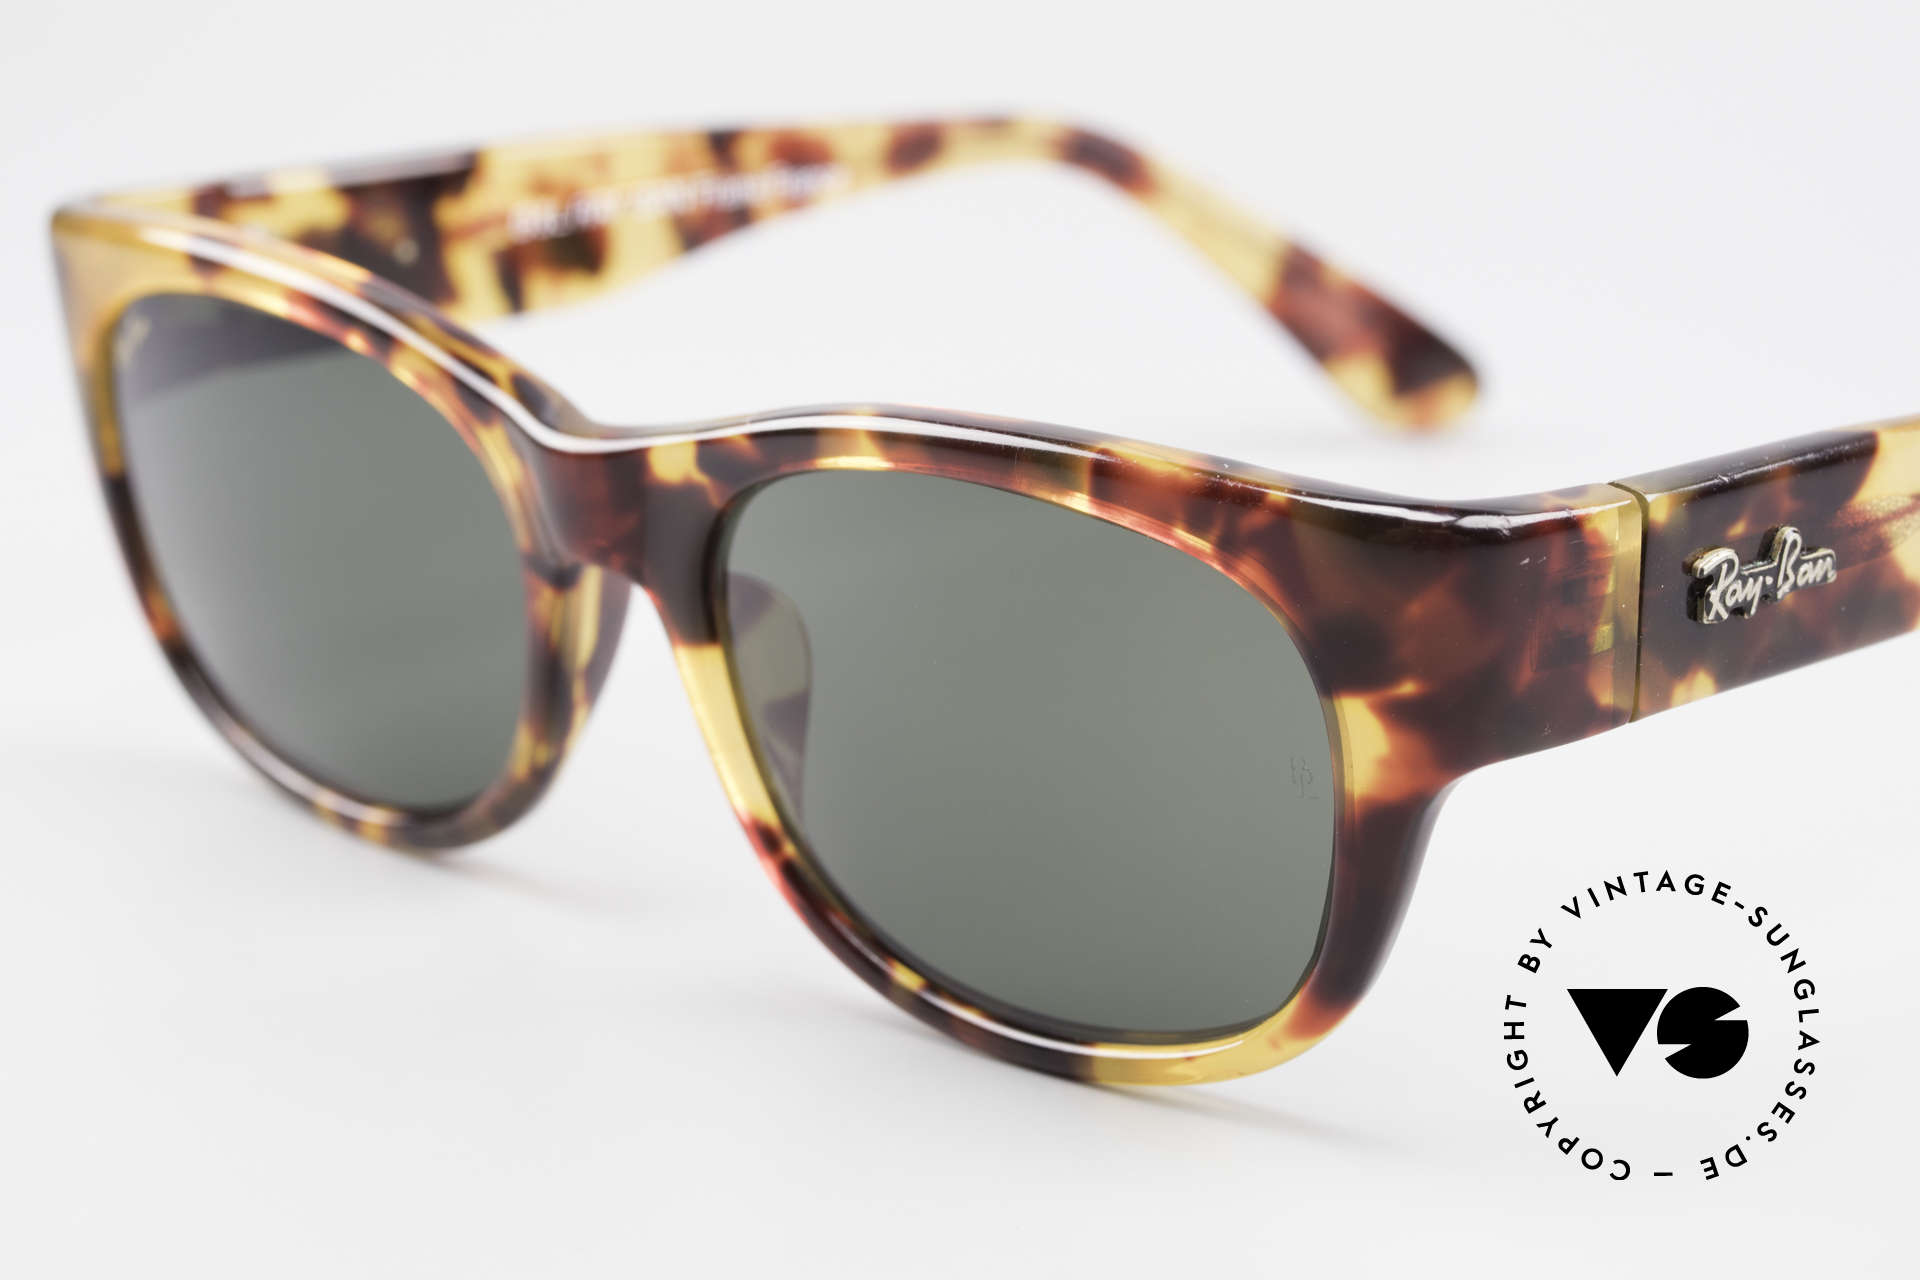 Ray Ban Bohemian Bausch & Lomb Sunglasses, unworn ( like all our vintage RAY-BAN shades), Made for Men and Women